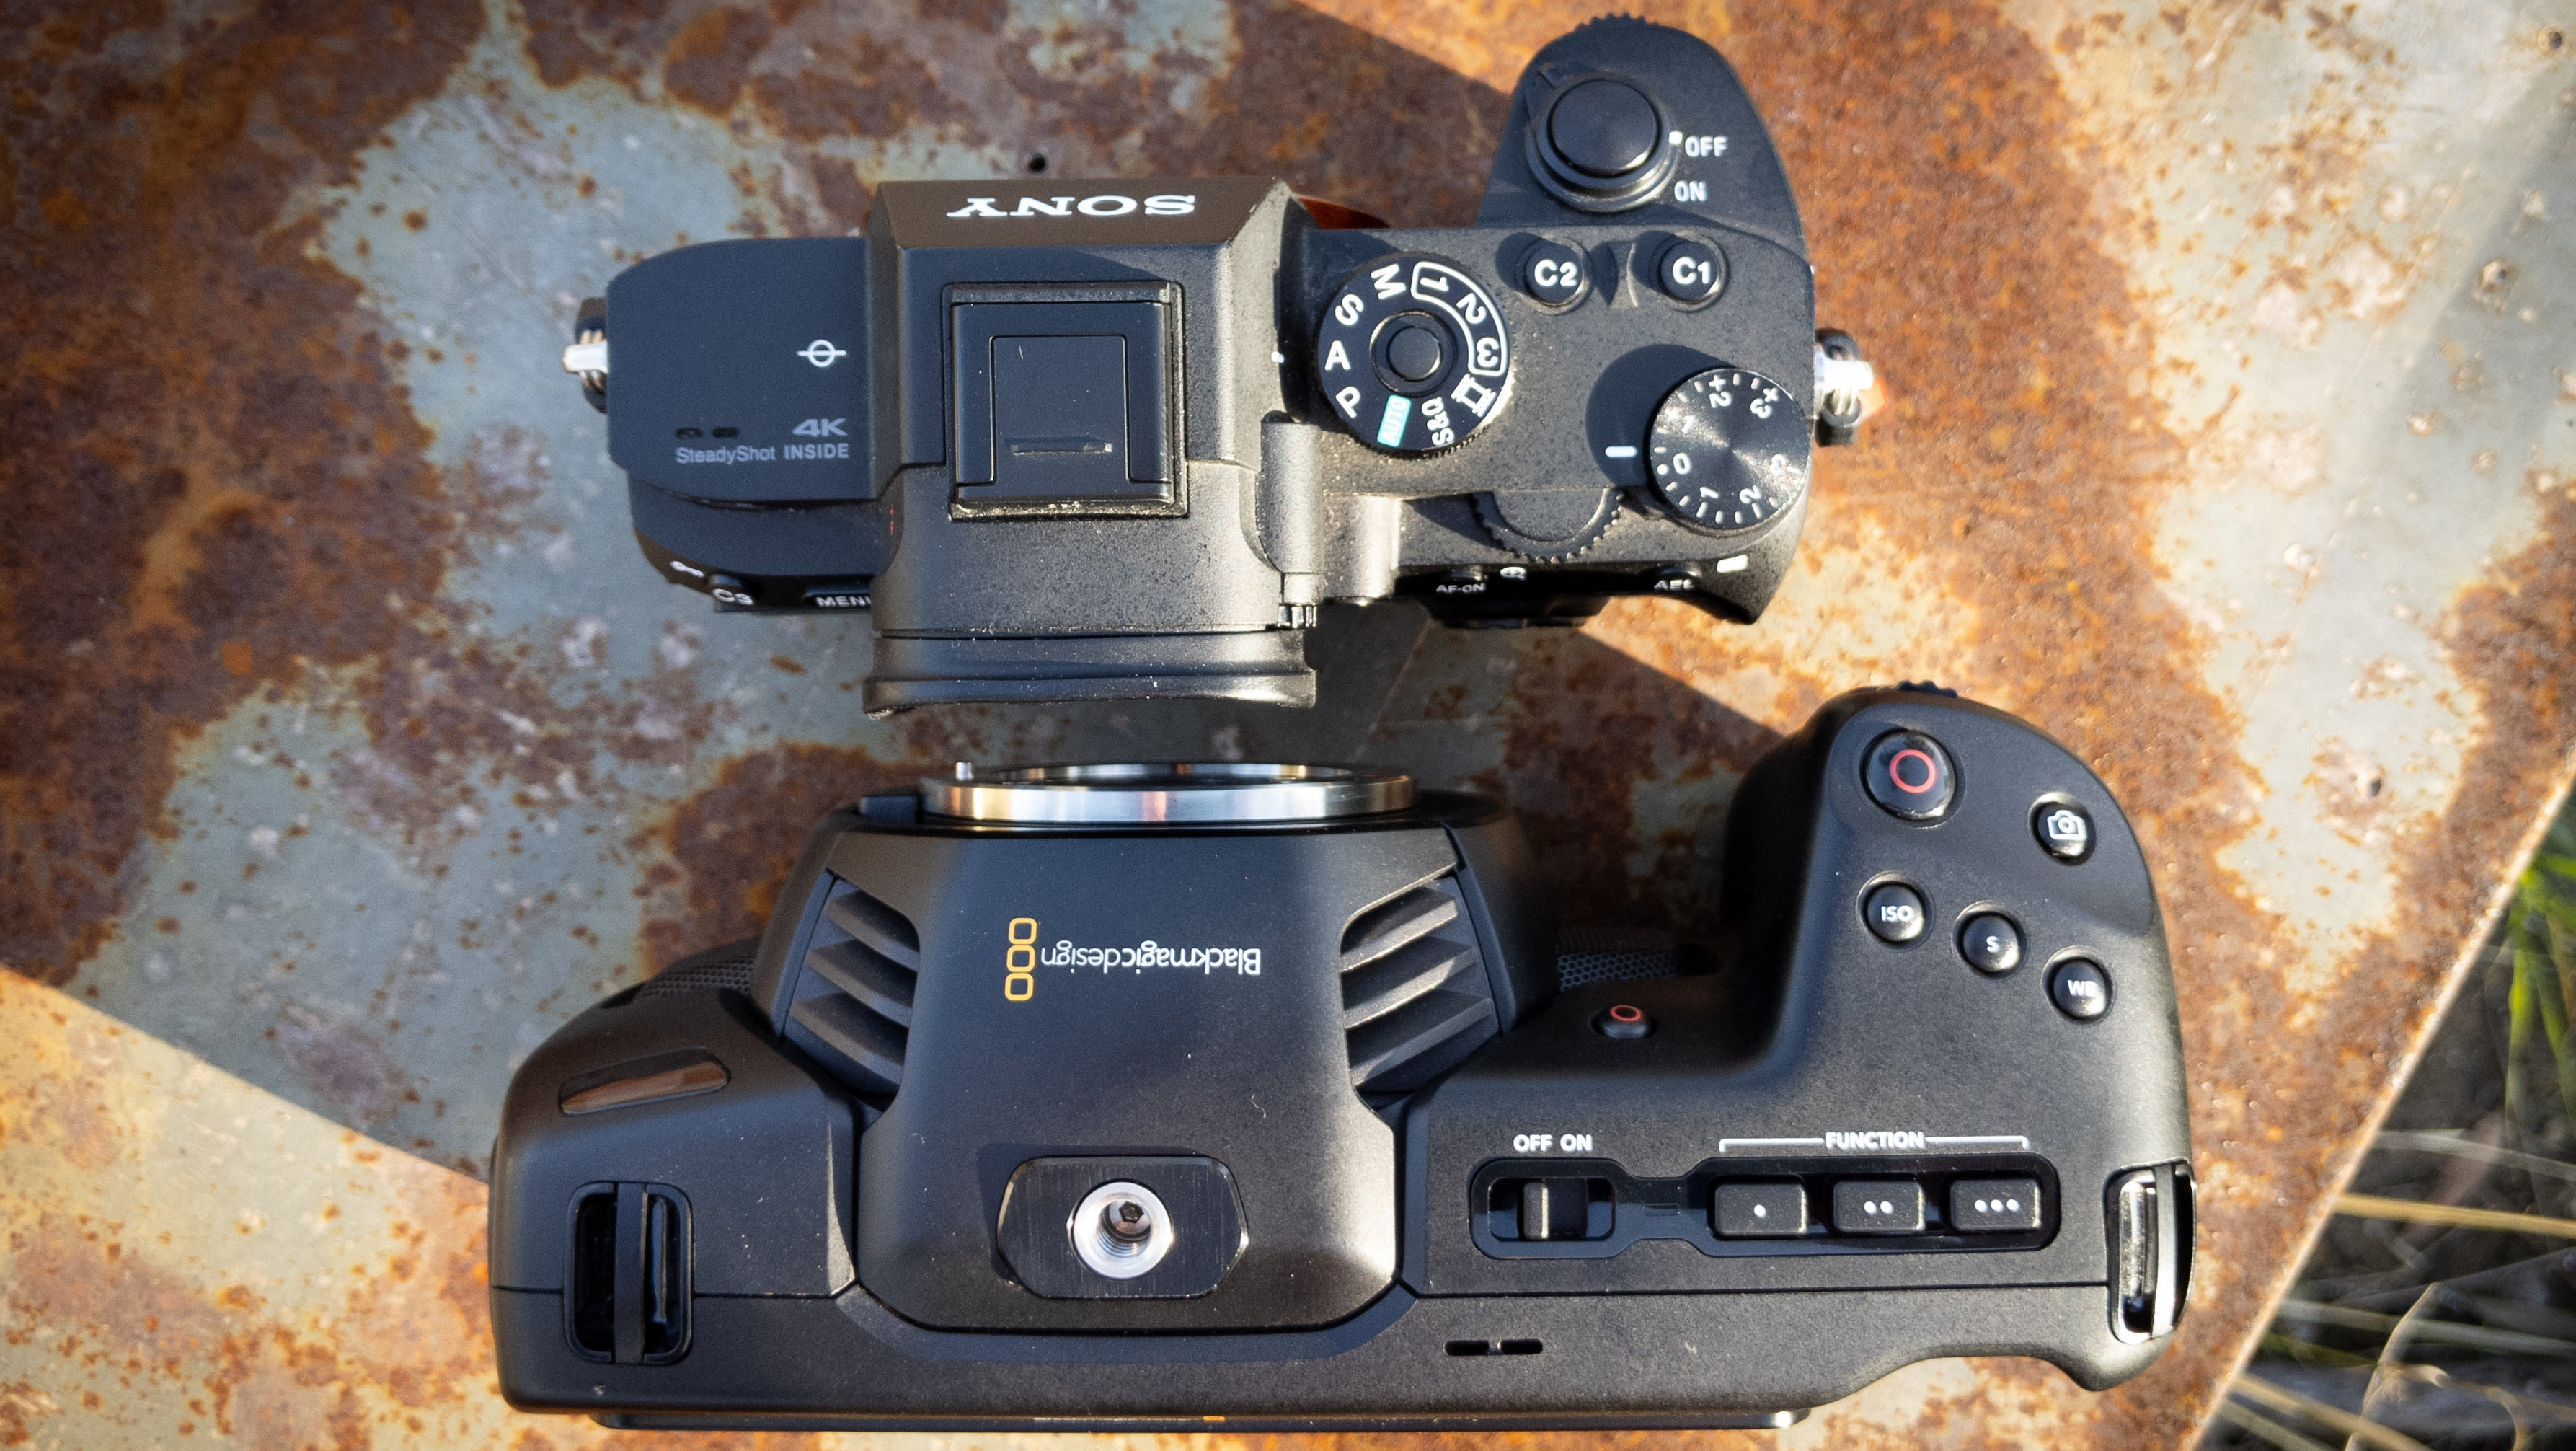 Blackmagic's Pocket Cinema Camera 4K Shoots Incredibly Beautiful, Incredibly Versatile Video